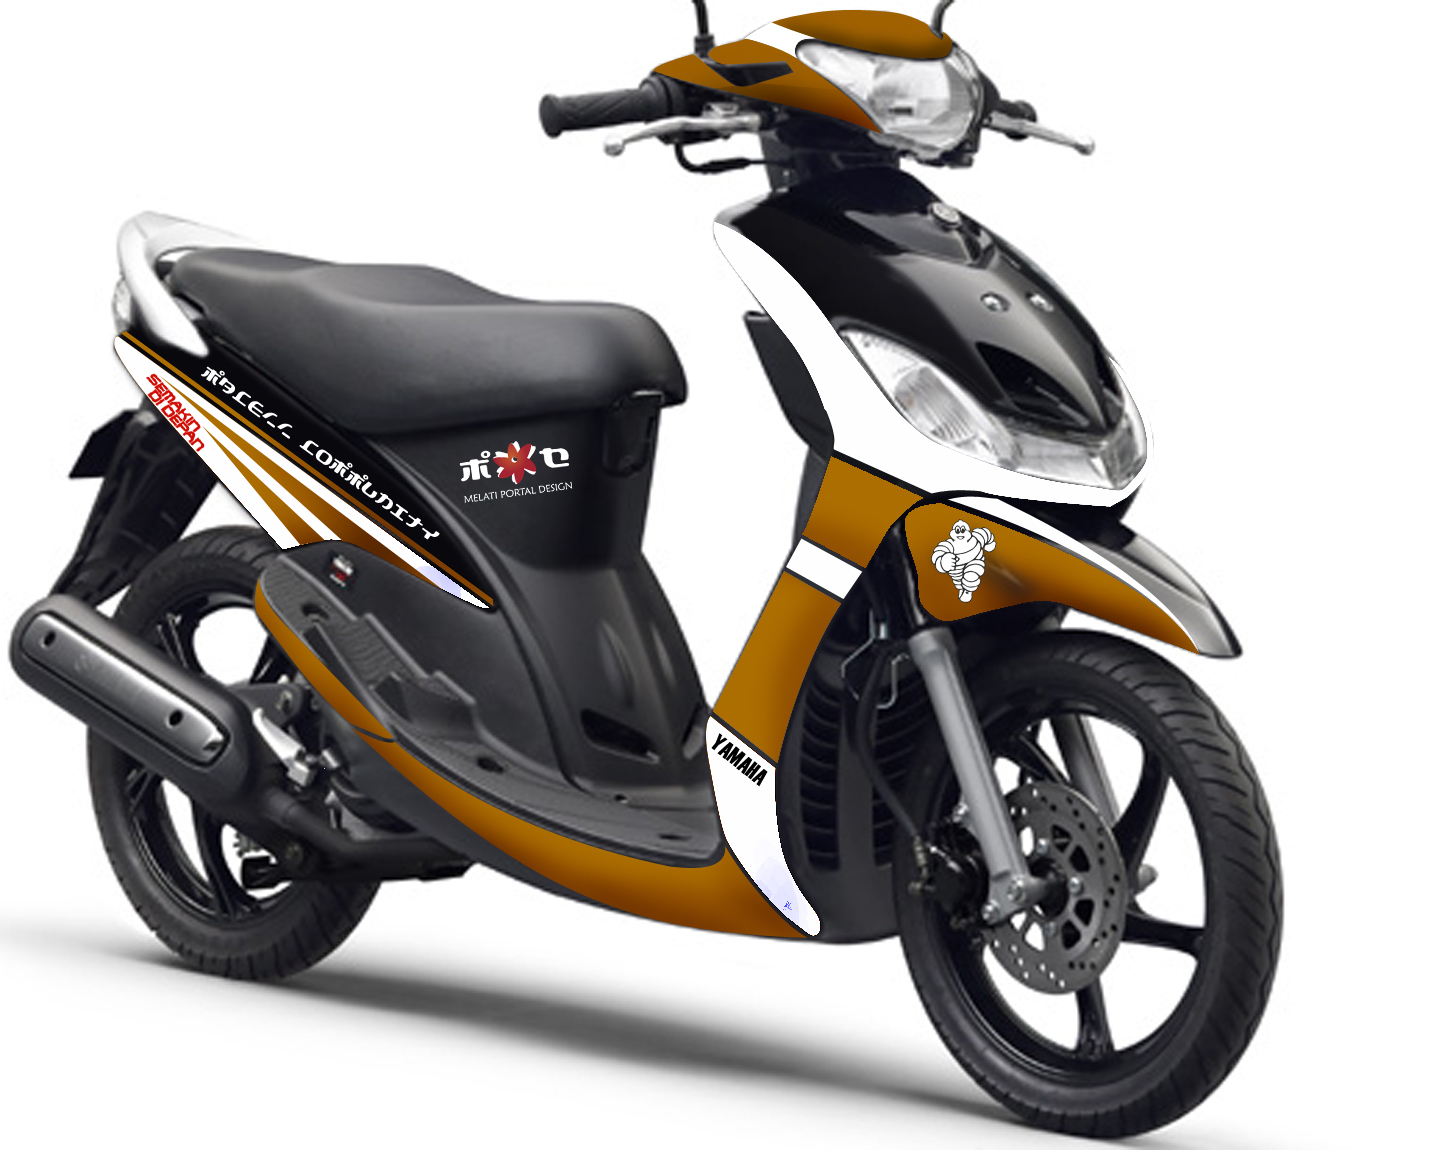 Modifikasi Motor Mio Sporty Warna Putih Pecinta Modifikasi